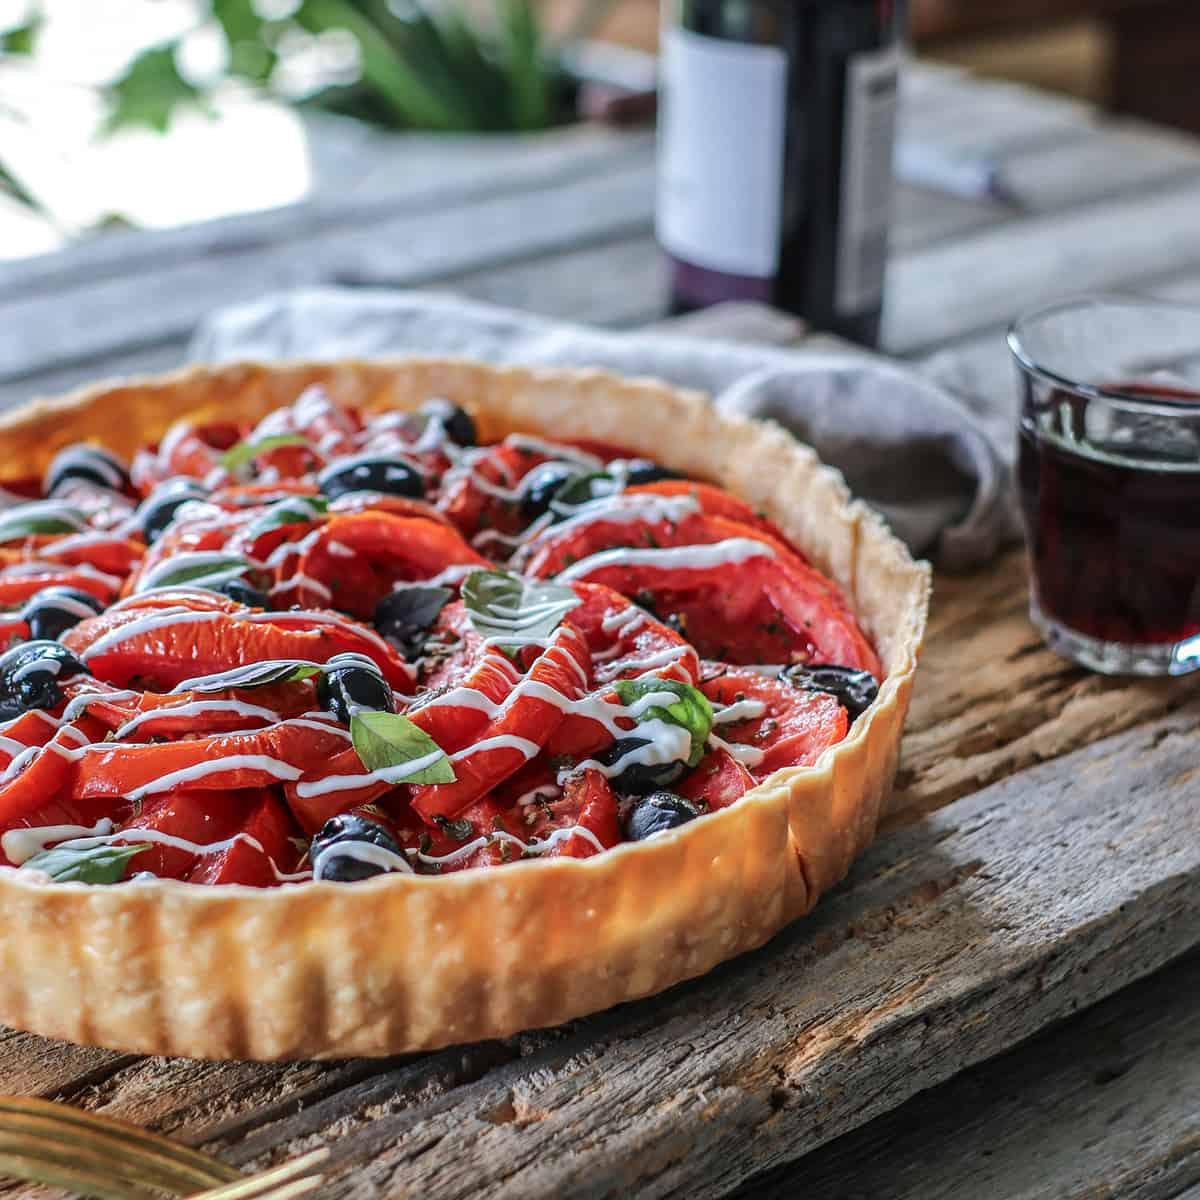 Heirloom Tomato and Black Olive Tart on a serving table next to a glass of red wine.